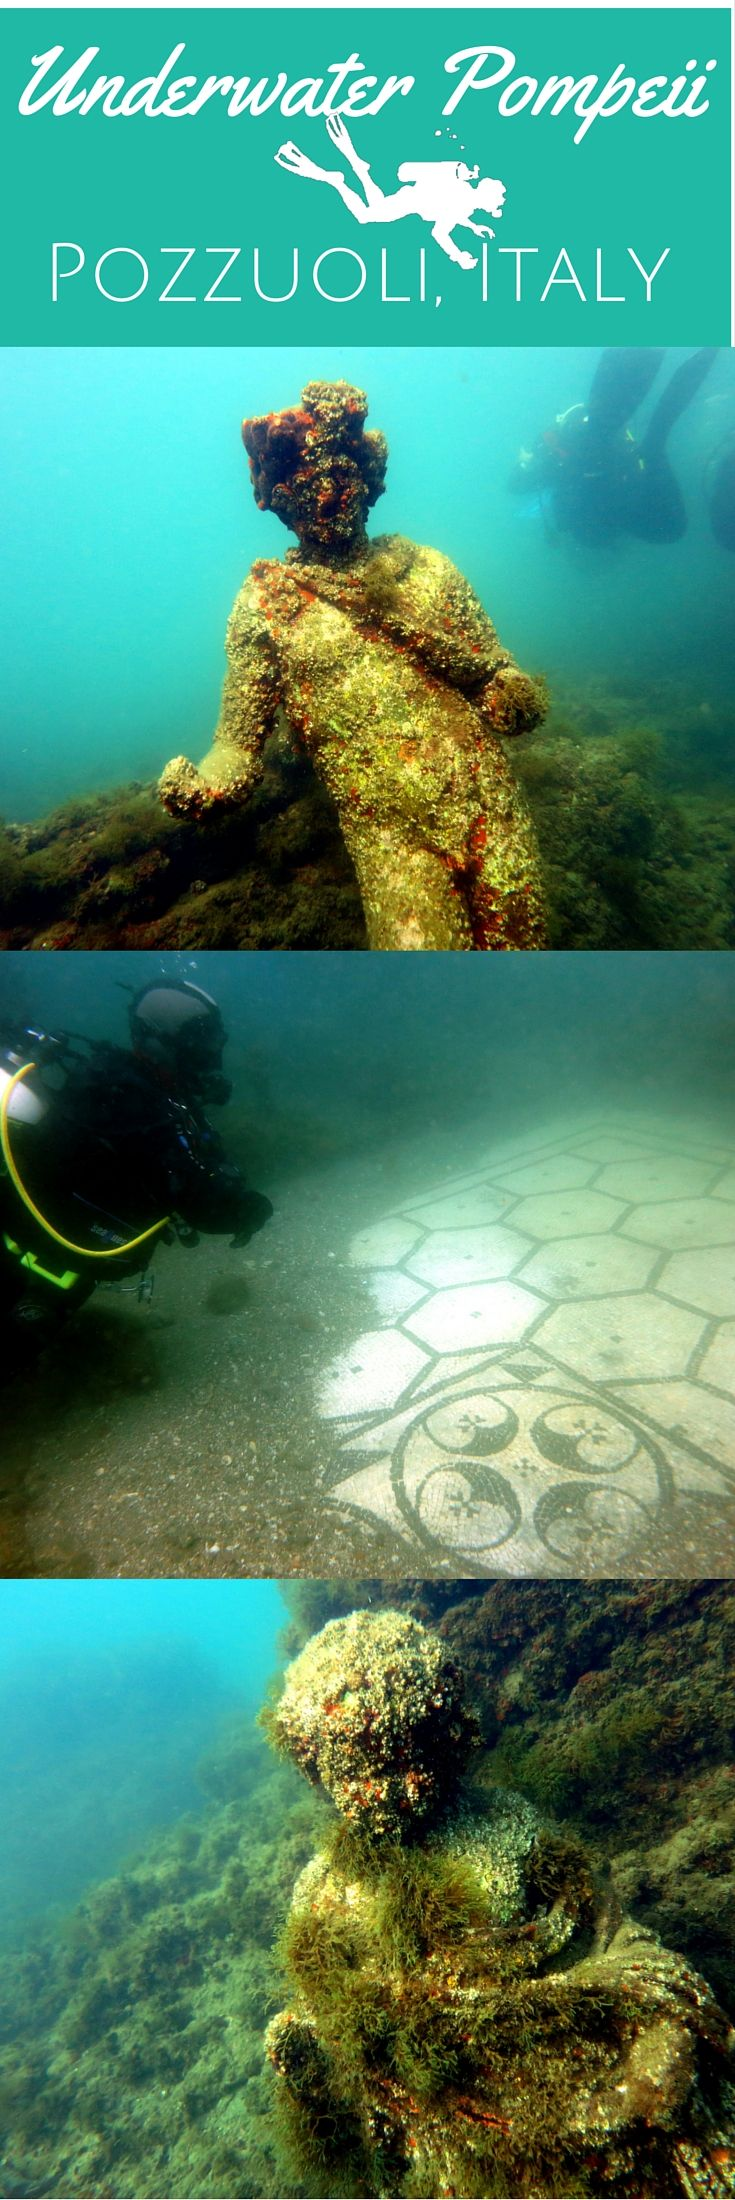 Dive with History: Underwater Pompeii in Pozzuoli, Italy - Archeological Park of…